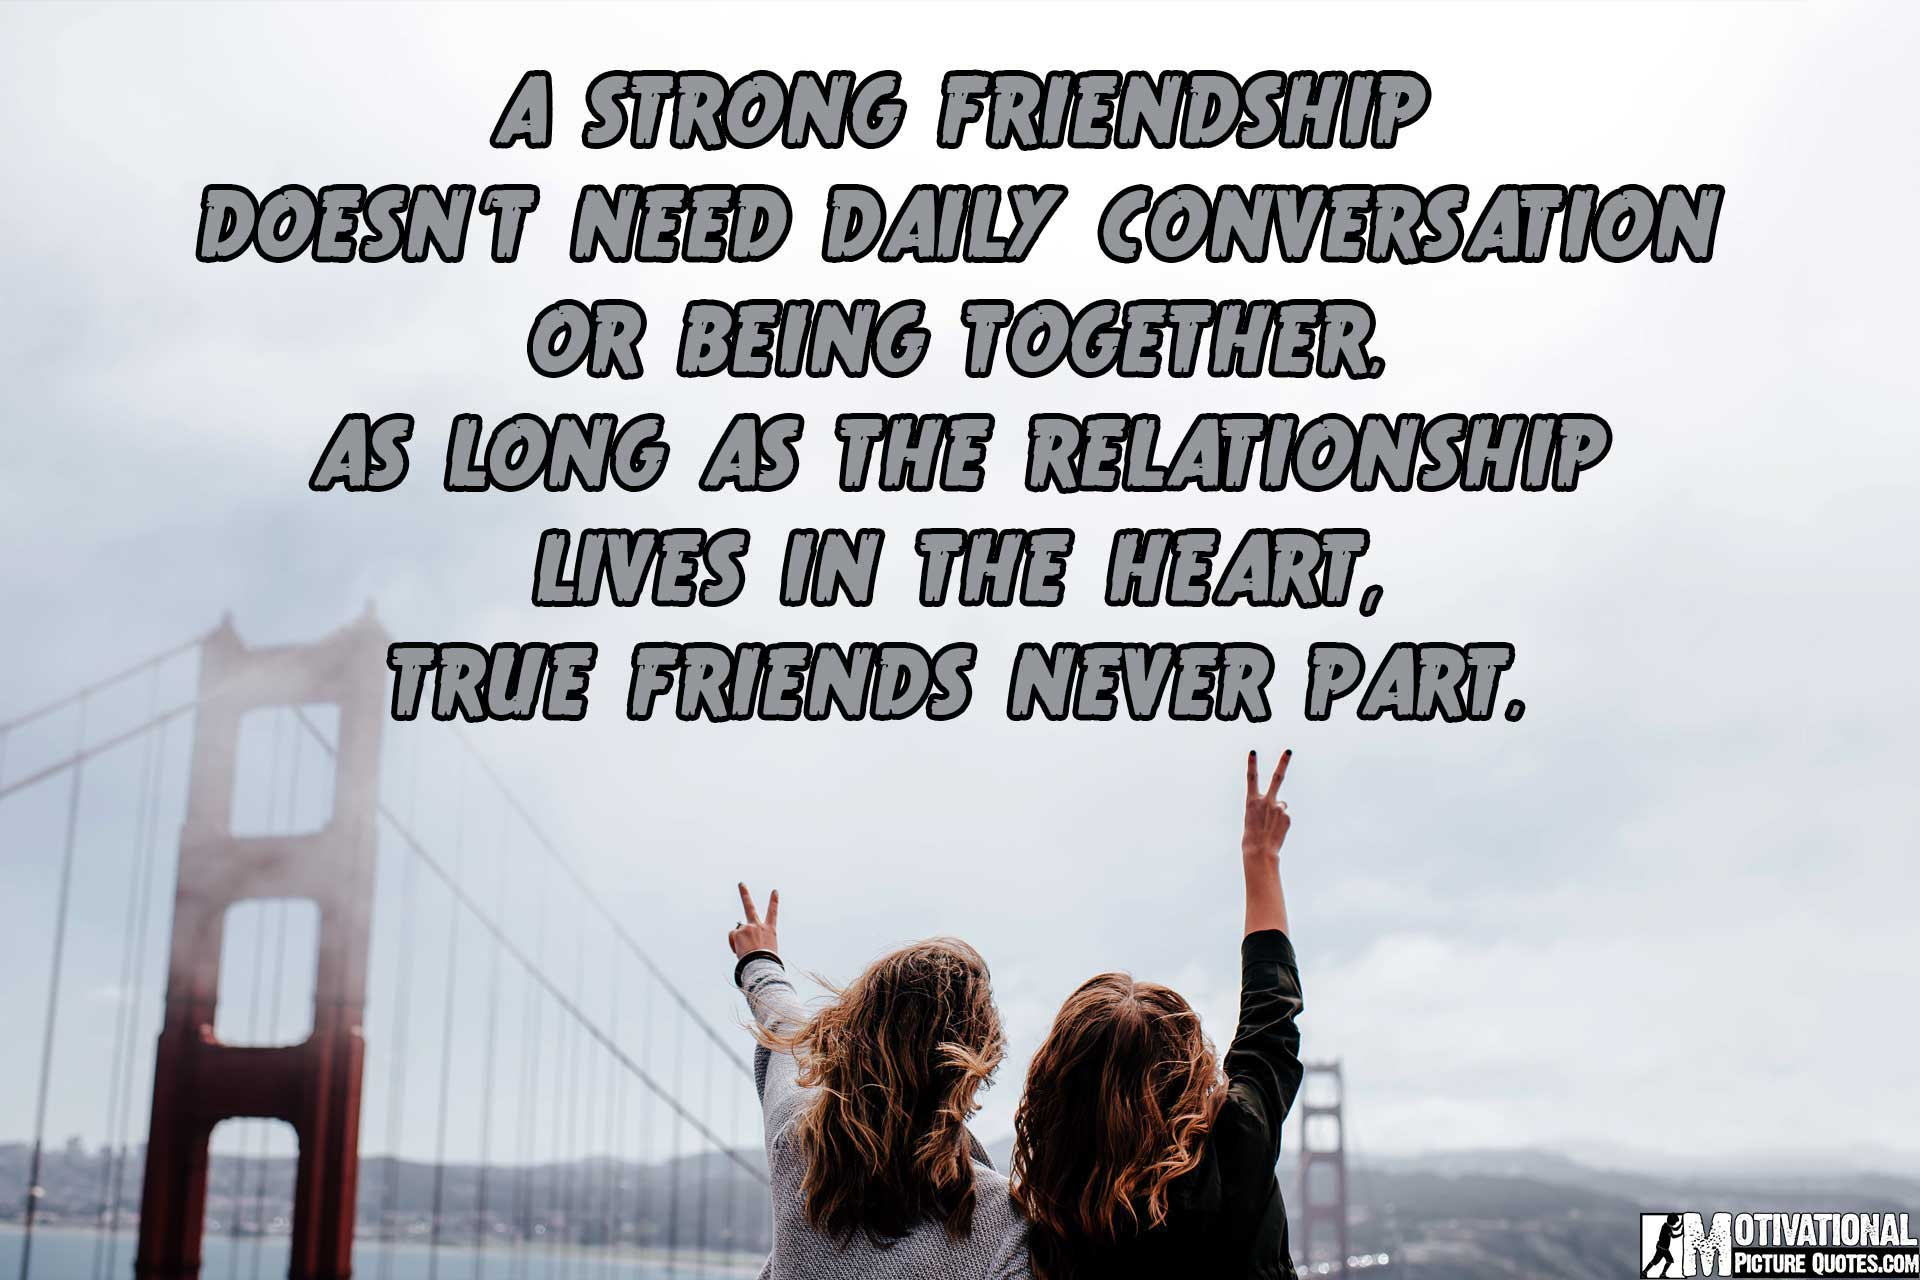 Quotes About Friendship Pictures Unique 25 Inspirational Friendship Quotes Images  Free Download